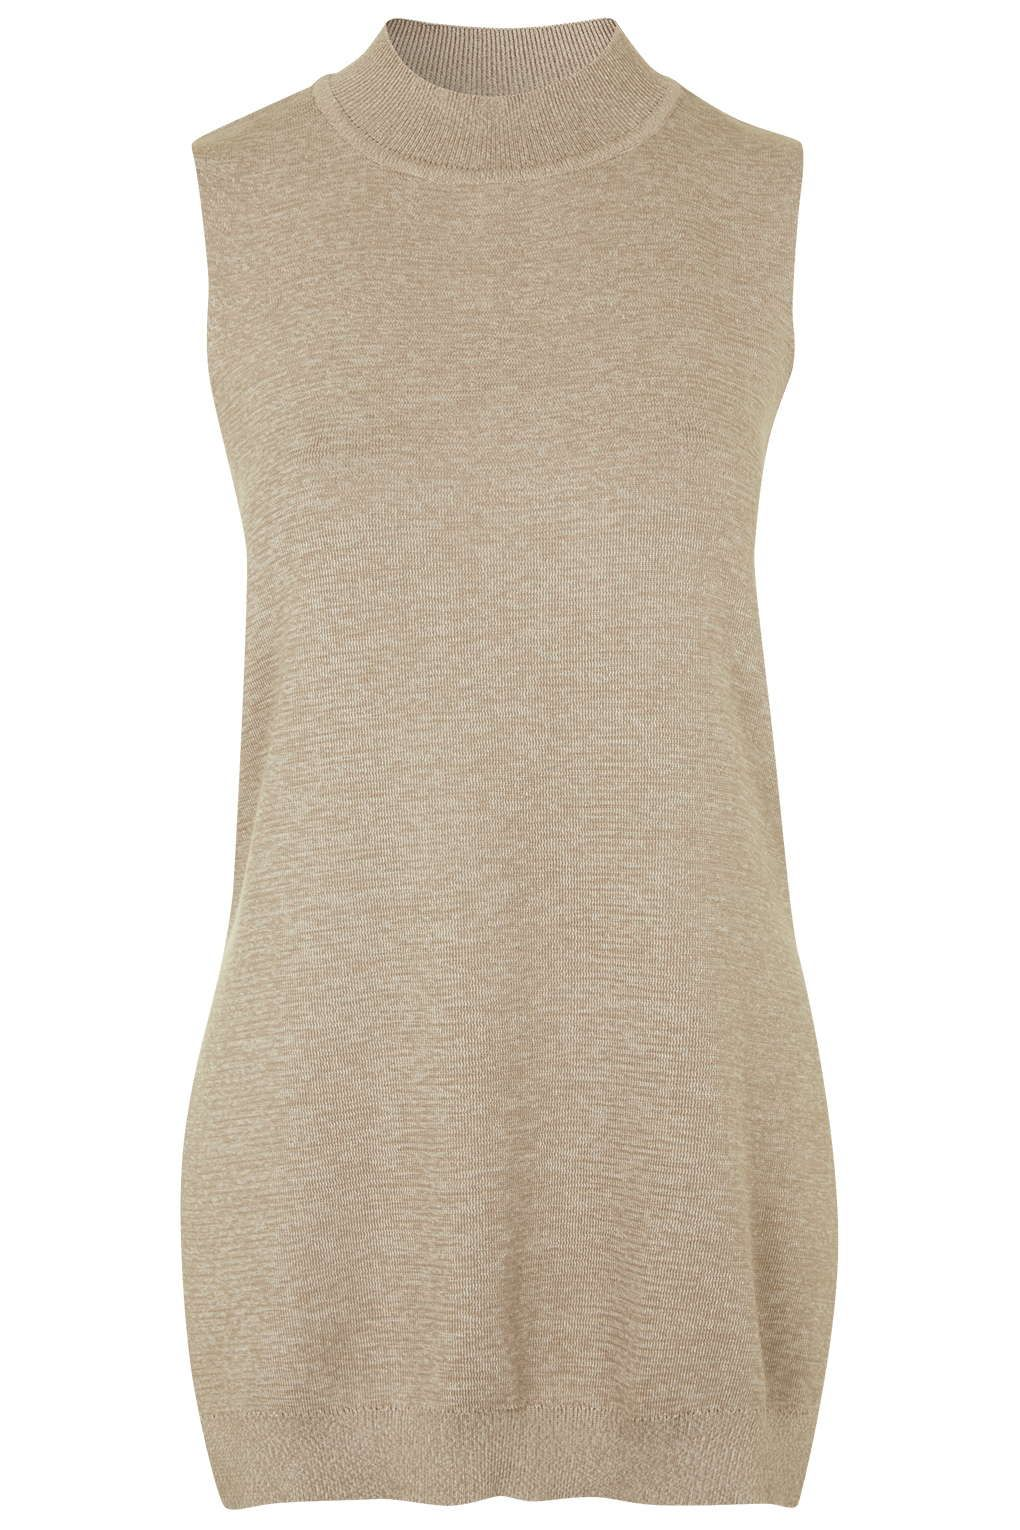 Photo 1 of Sleeveless Two-Tone Knit Top